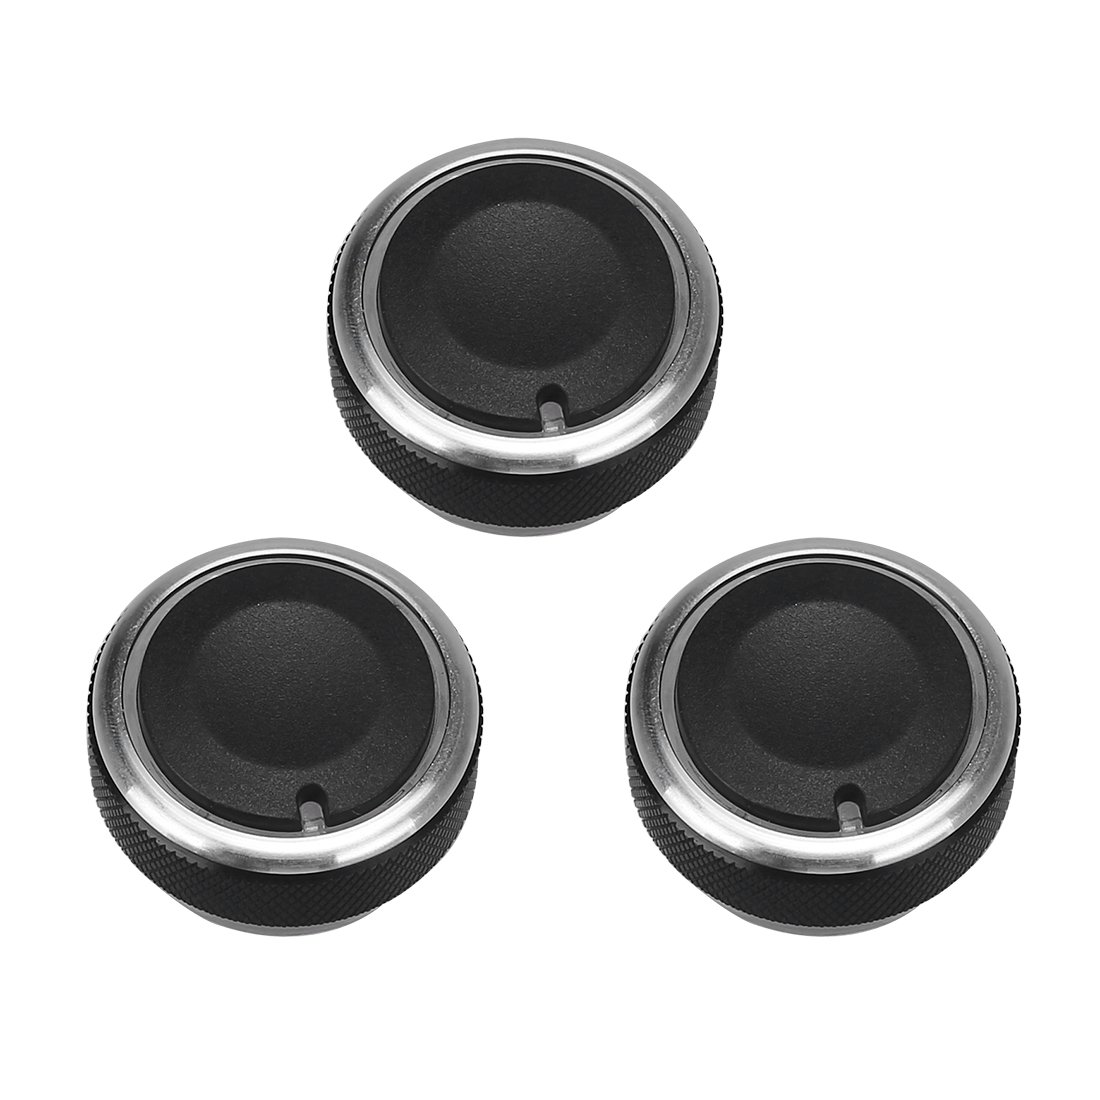 Air Conditioning knob Switch Control Button 3Pcs Black